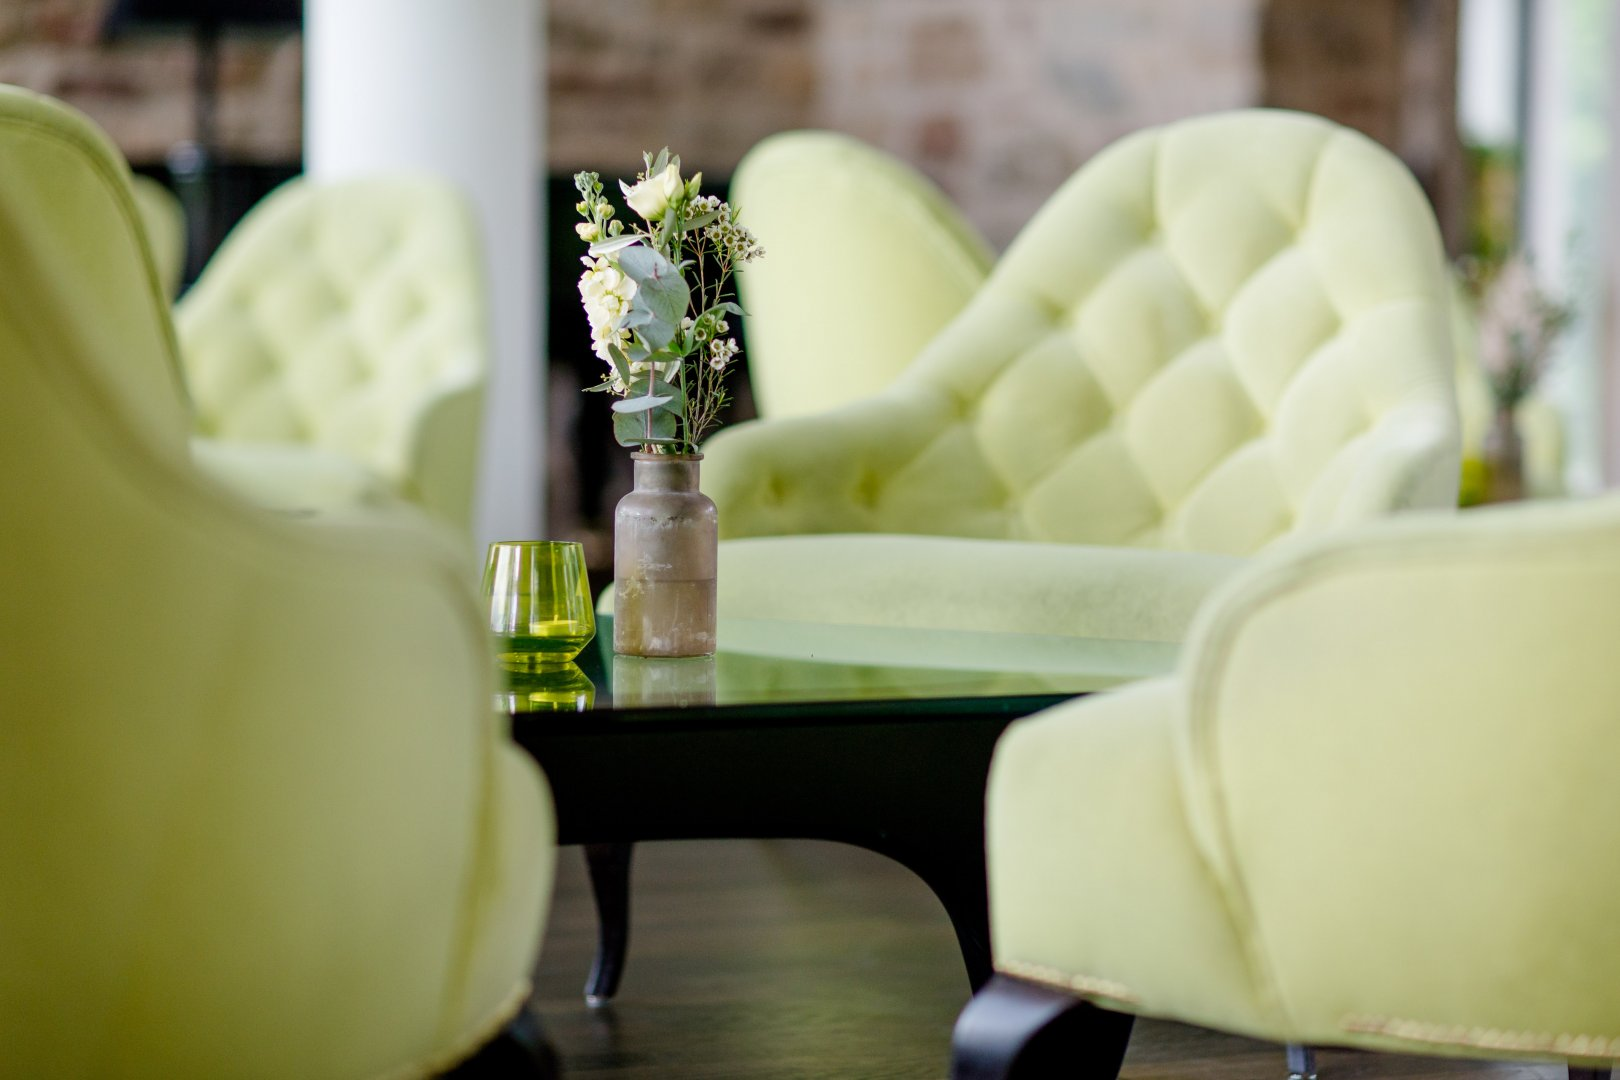 Green Yellow Furniture Room Interior design Living room Chair Table Slipcover Plant Interior design Couch